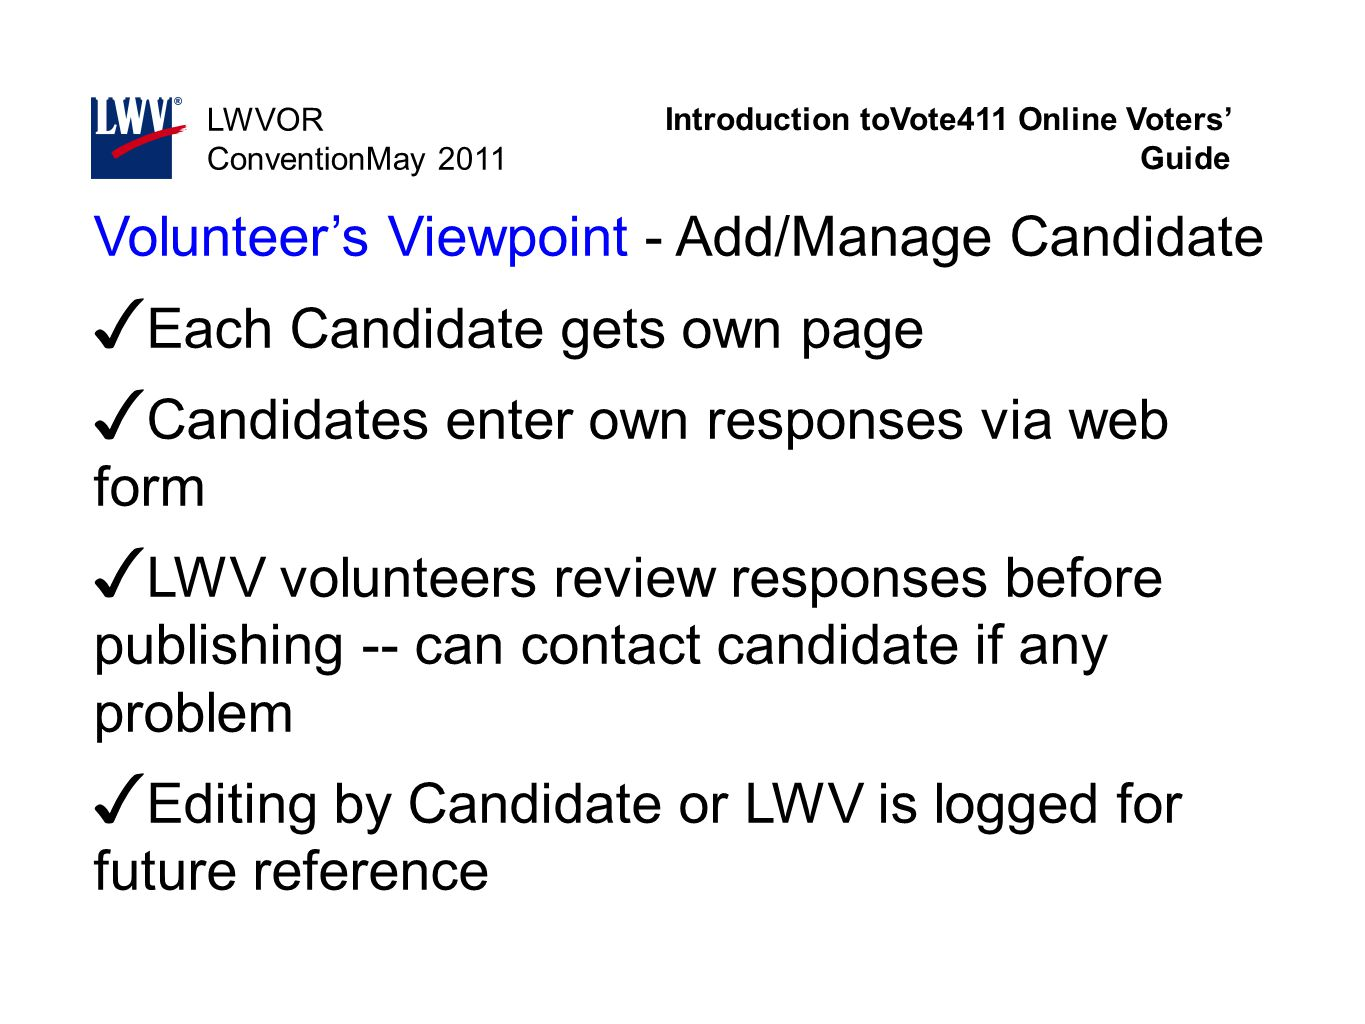 Introduction toVote411 Online Voters' Guide LWVOR ConventionMay 2011 Volunteer's Viewpoint - Add/Manage Candidate ✓ Each Candidate gets own page ✓ Can